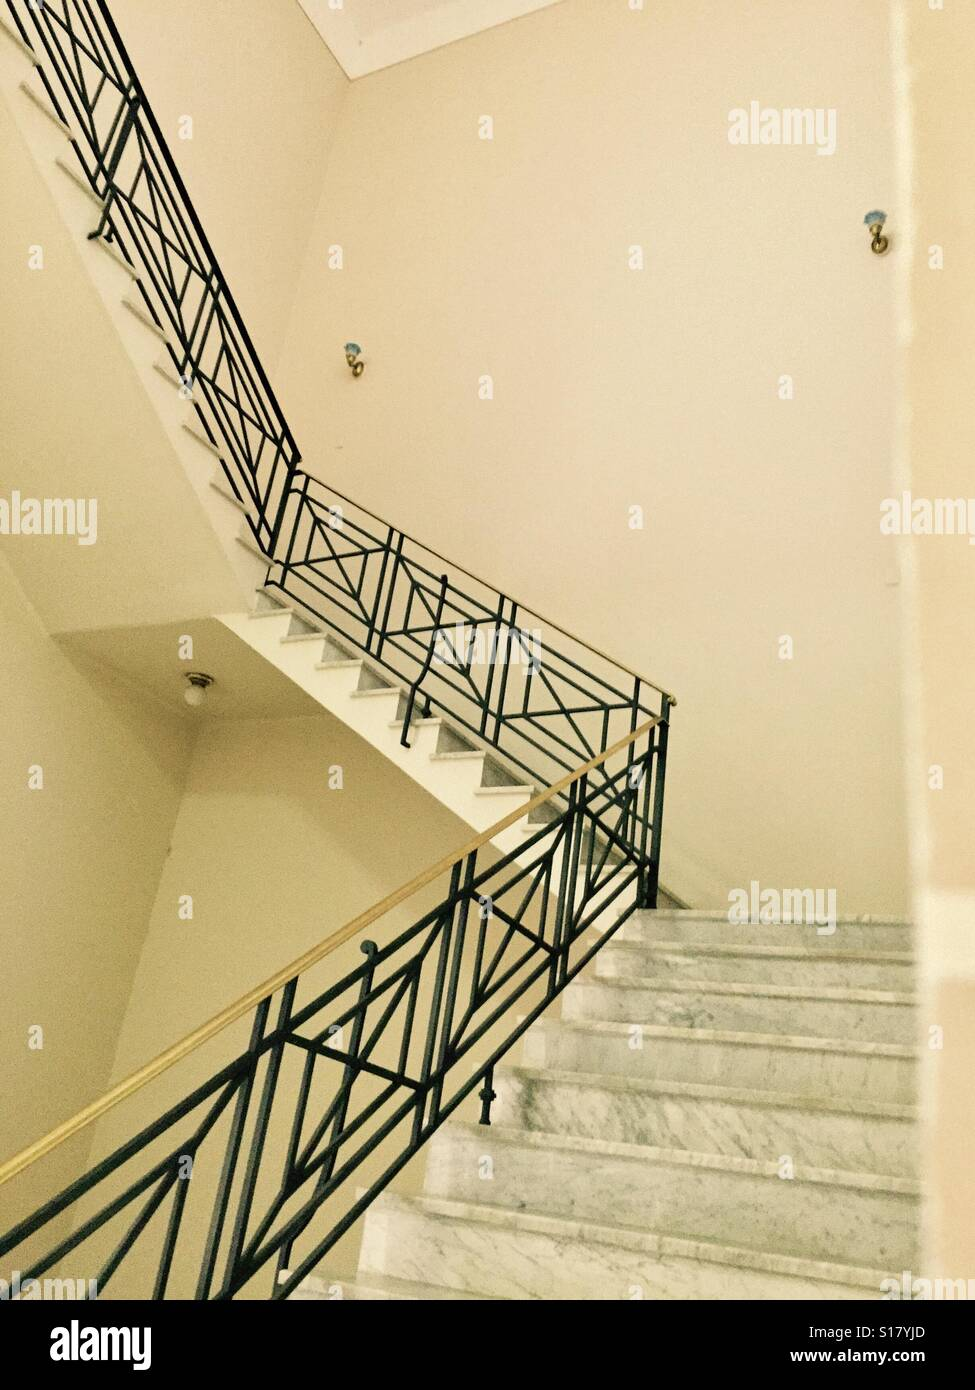 Wrought Iron Banisters Stock Photos & Wrought Iron Banisters Stock ...